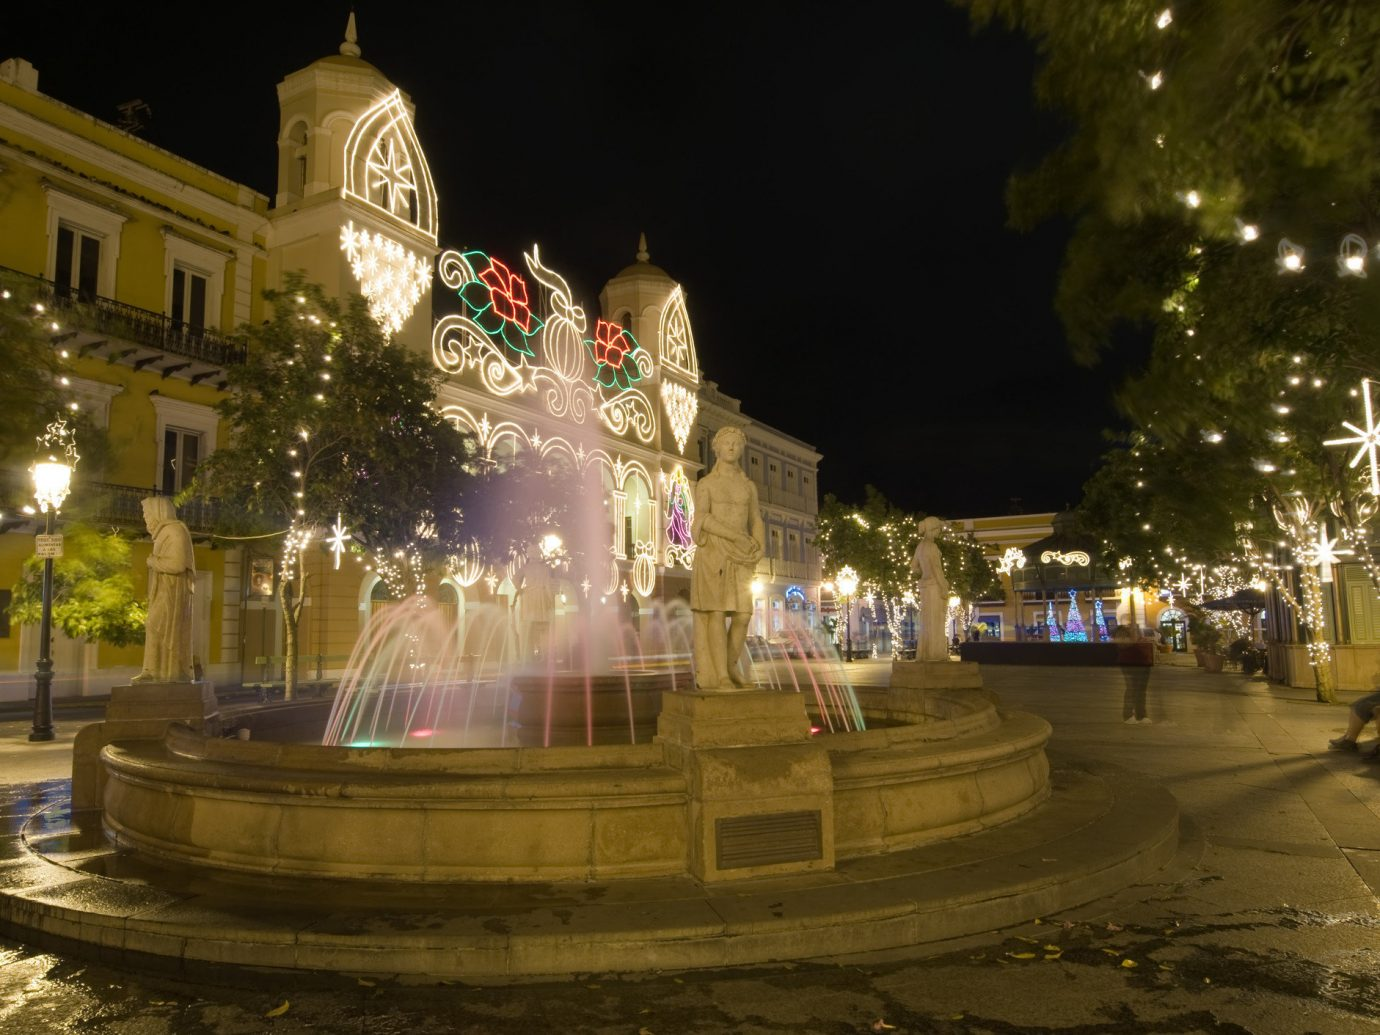 Trip Ideas outdoor night tree fountain Christmas christmas decoration water feature lighting town square christmas lights